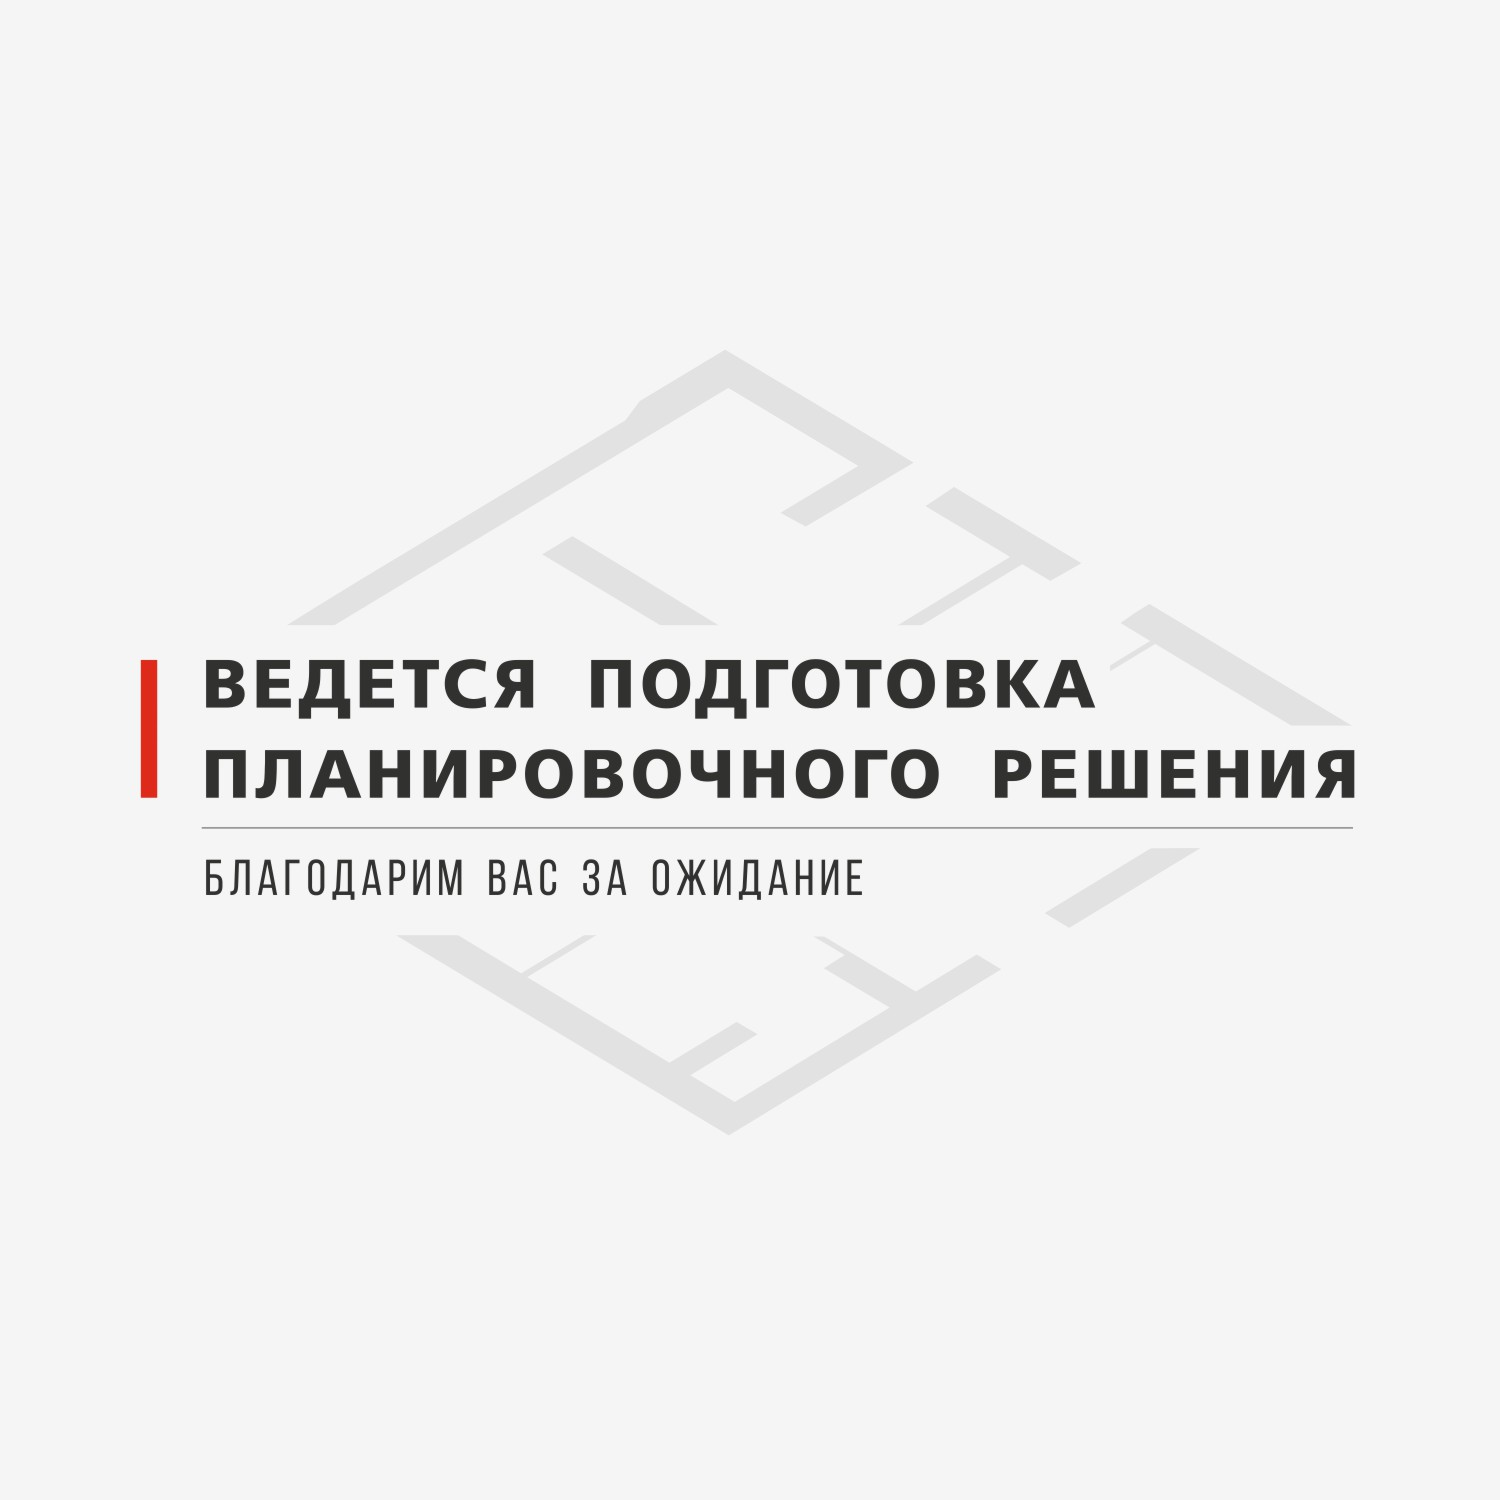 Купить однокомнатную квартиру в новостройке г Москва, ул Лобачевского, д 120 - World Real Estate Service «PUSH-KA», объявление №189272